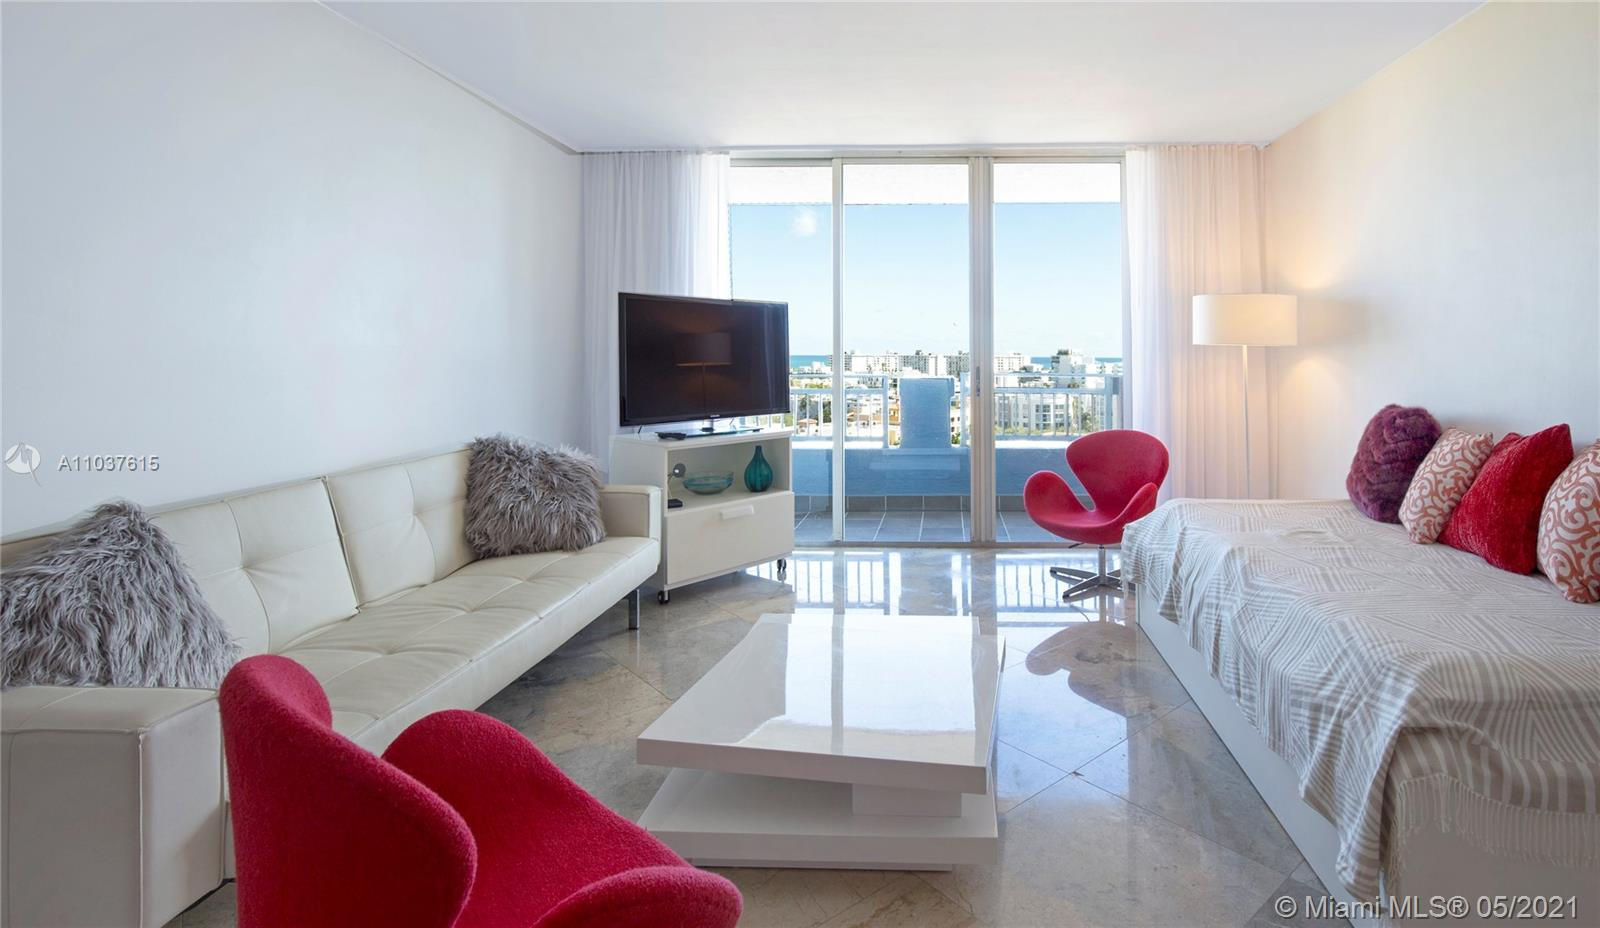 Great property with 2bed/ 2ba, marble floors through the unit, beautiful views to South Beach and Ocean. Brand new stainless steel appliances and blinds. Yacht Club has great amenities: Pool, heated Jacuzzi, tennis court, fitness center, BBq area and more.